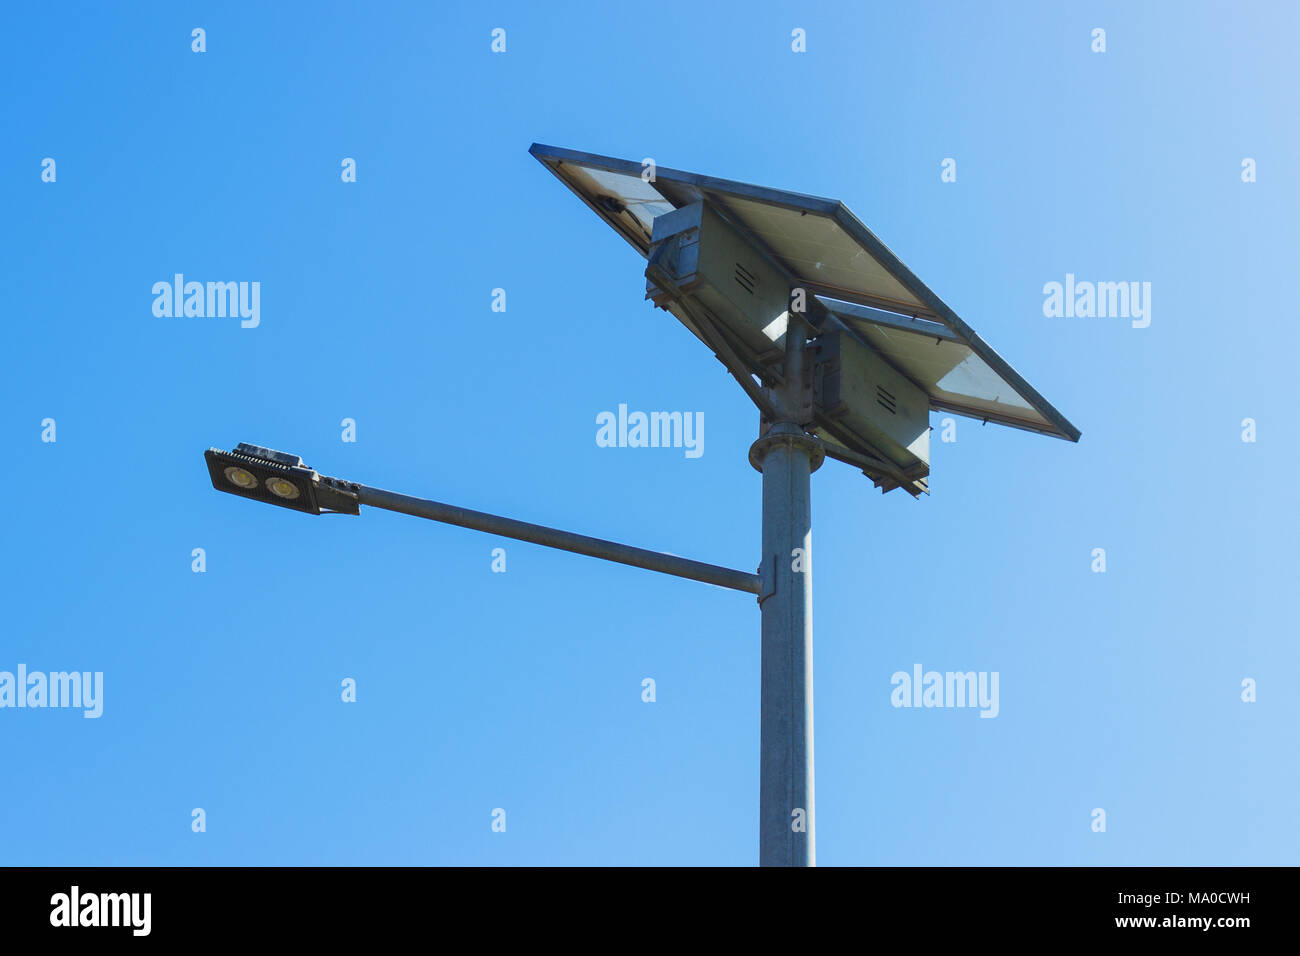 Led Verlichting Met Los Paneel Street Light With Solar Panel Led Lamp Renewable Energy Stock